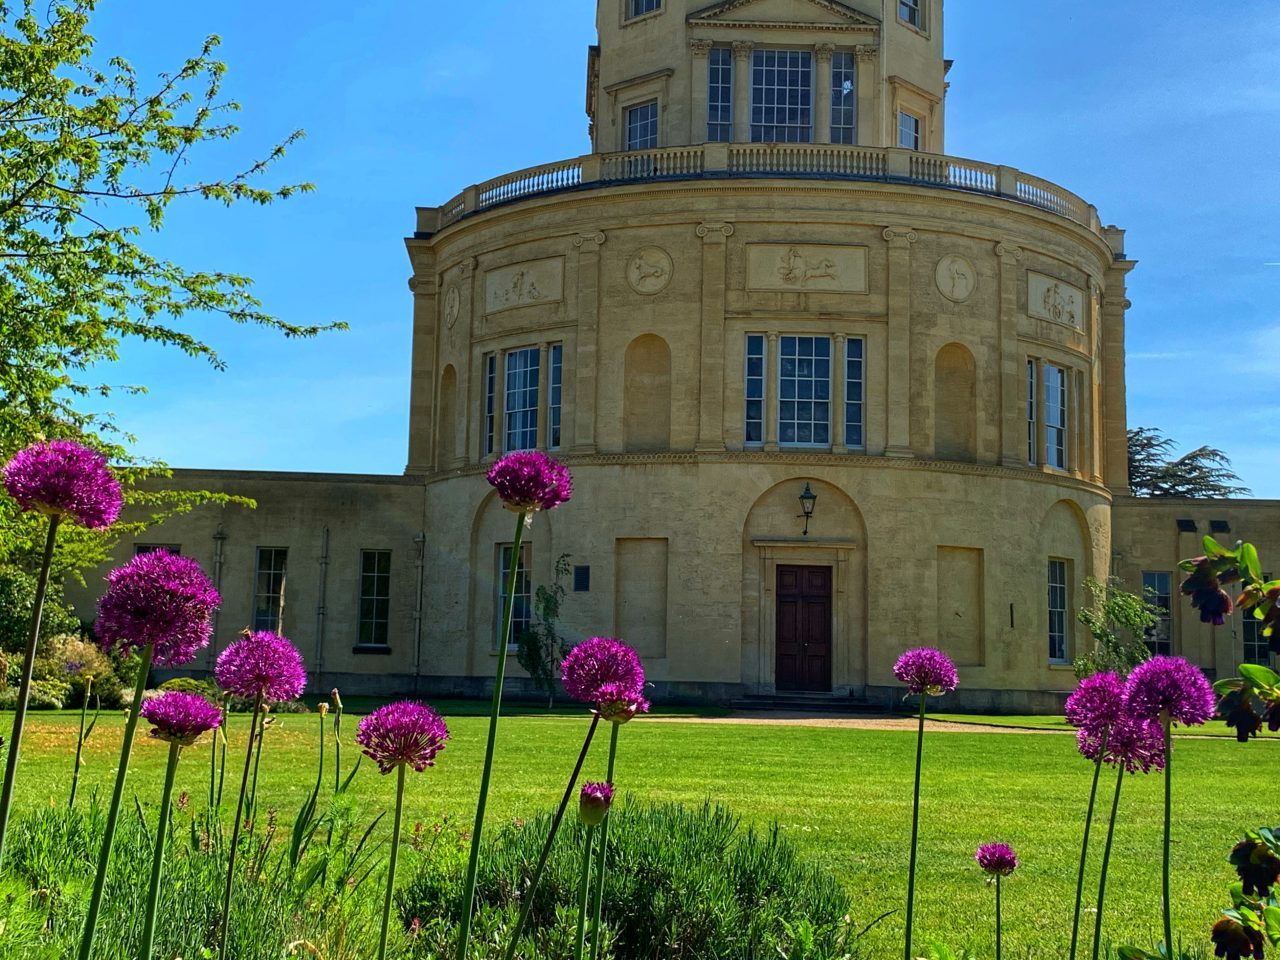 Flowers in front of the Radcliffe Observatory at Green Templeton College